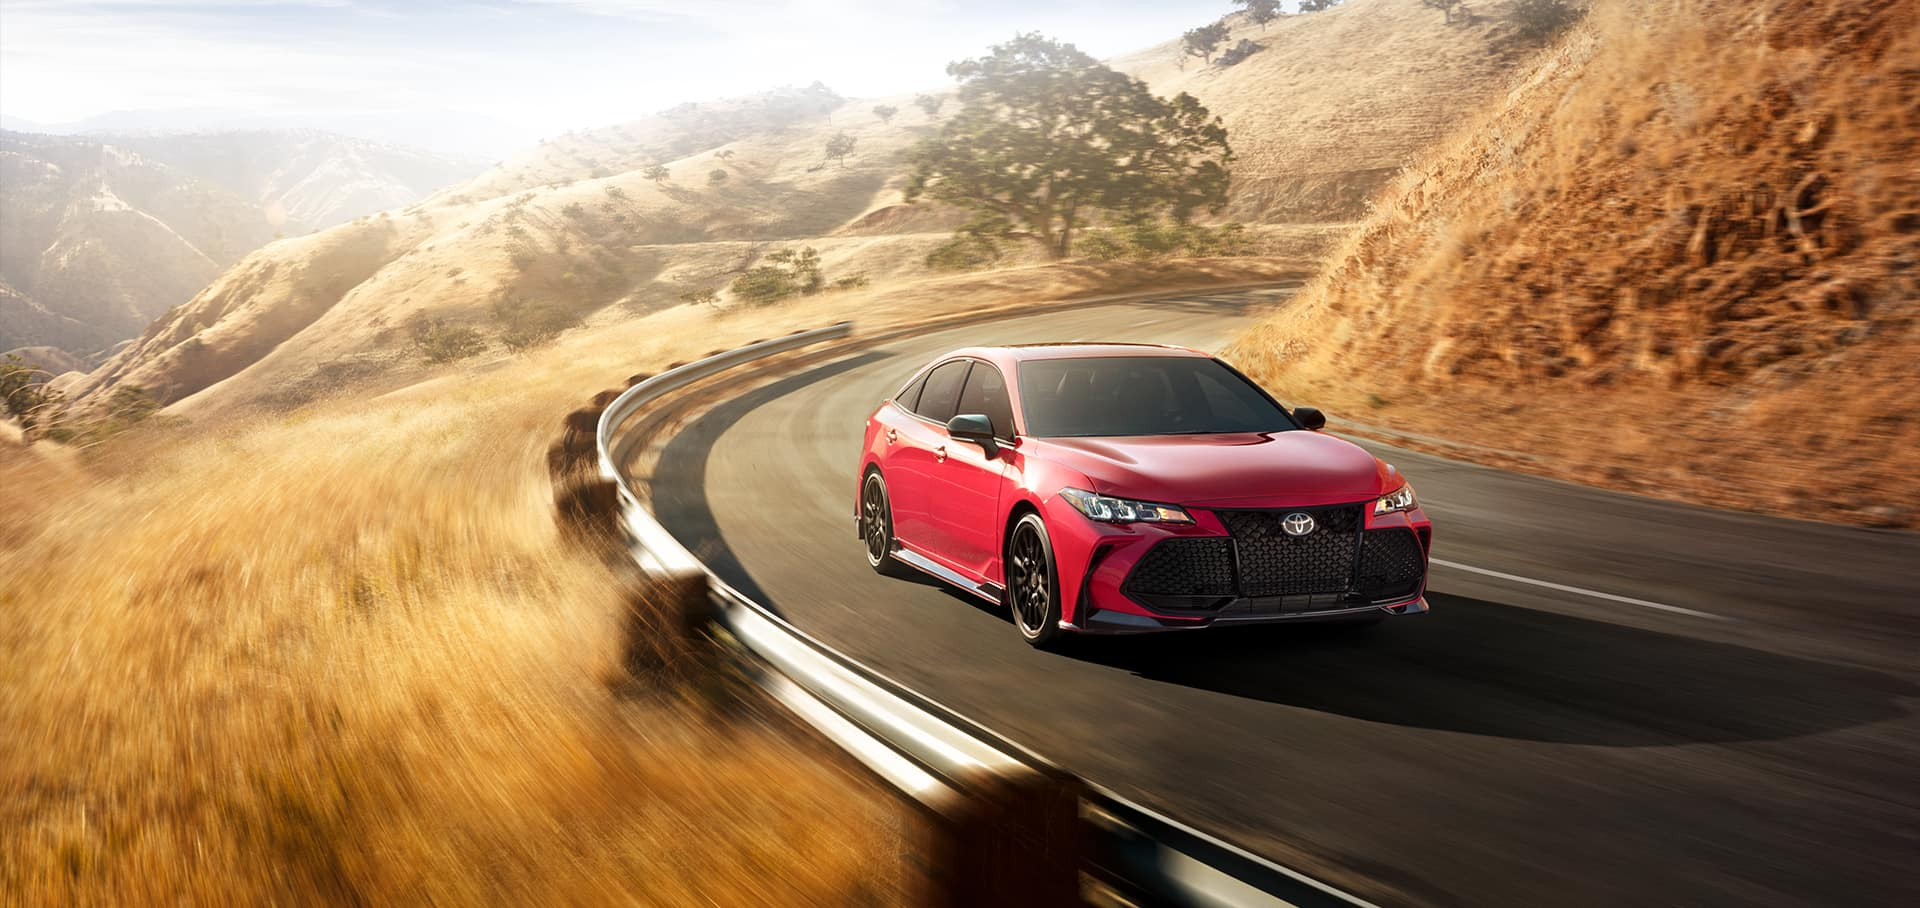 2020 Toyota red vehicle driving